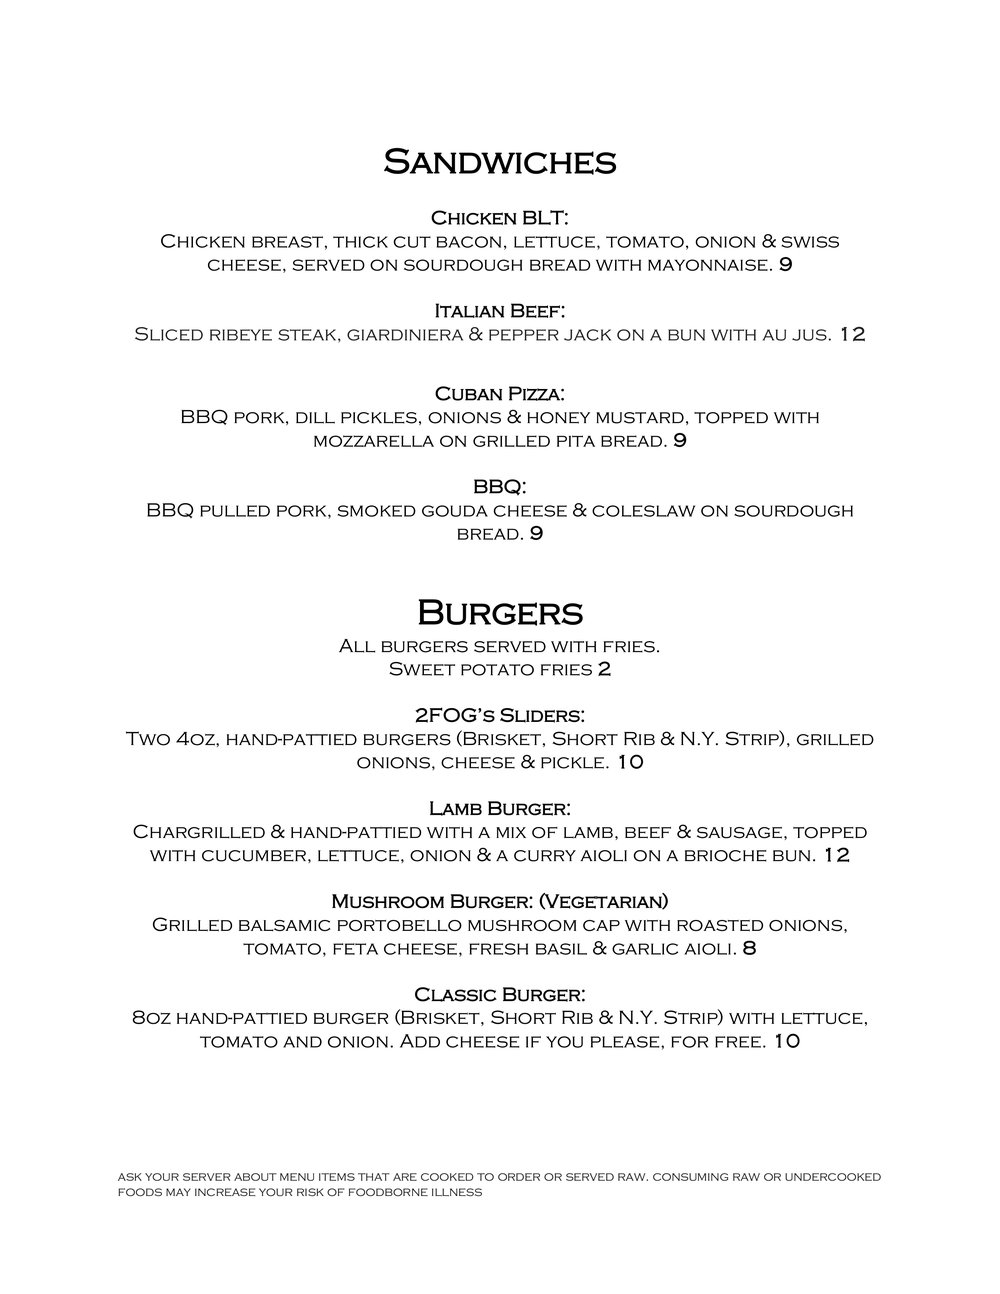 2FOG's Pub Sunday Brunch Menu - Page 2